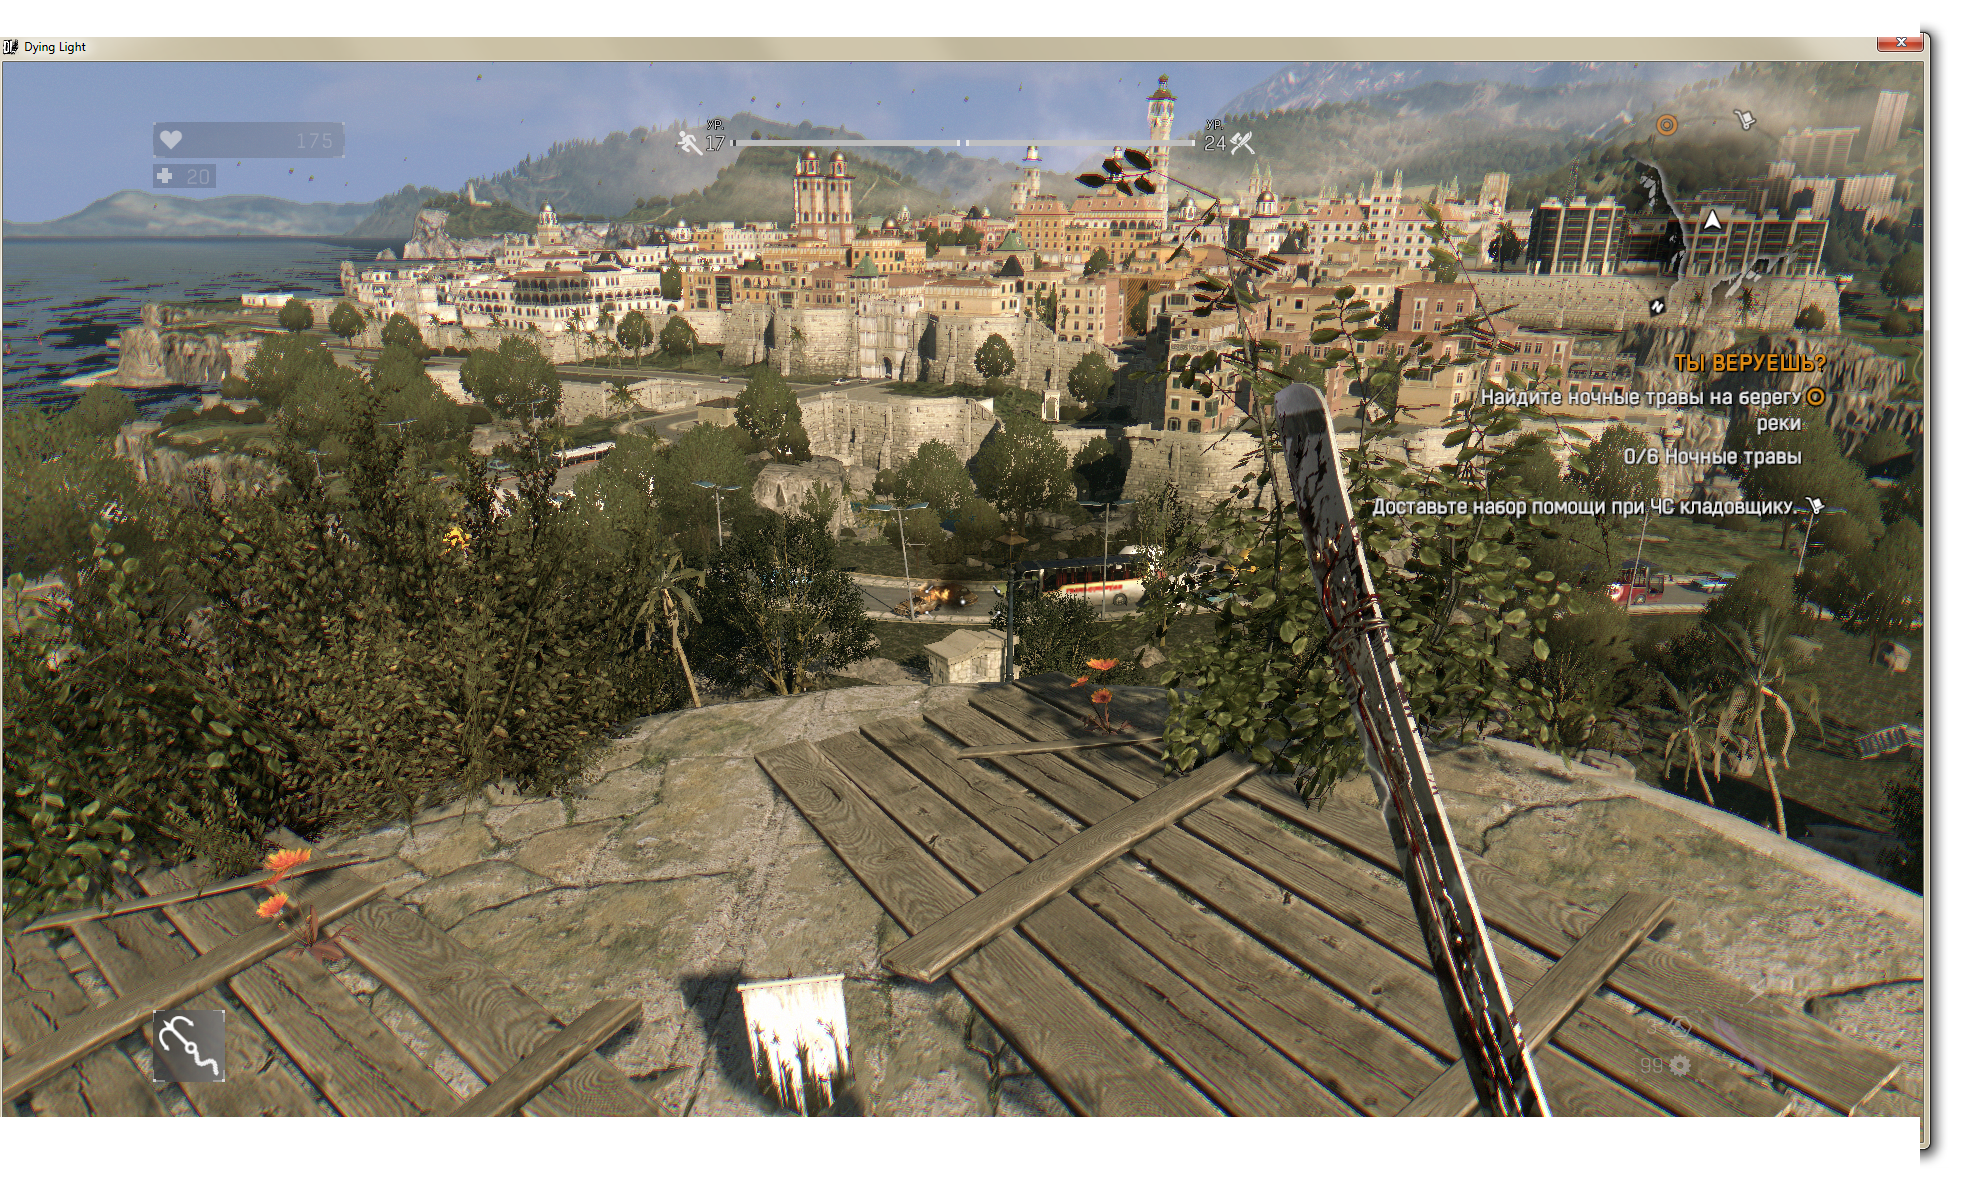 2015-02-05 20-10-01 Dying Light